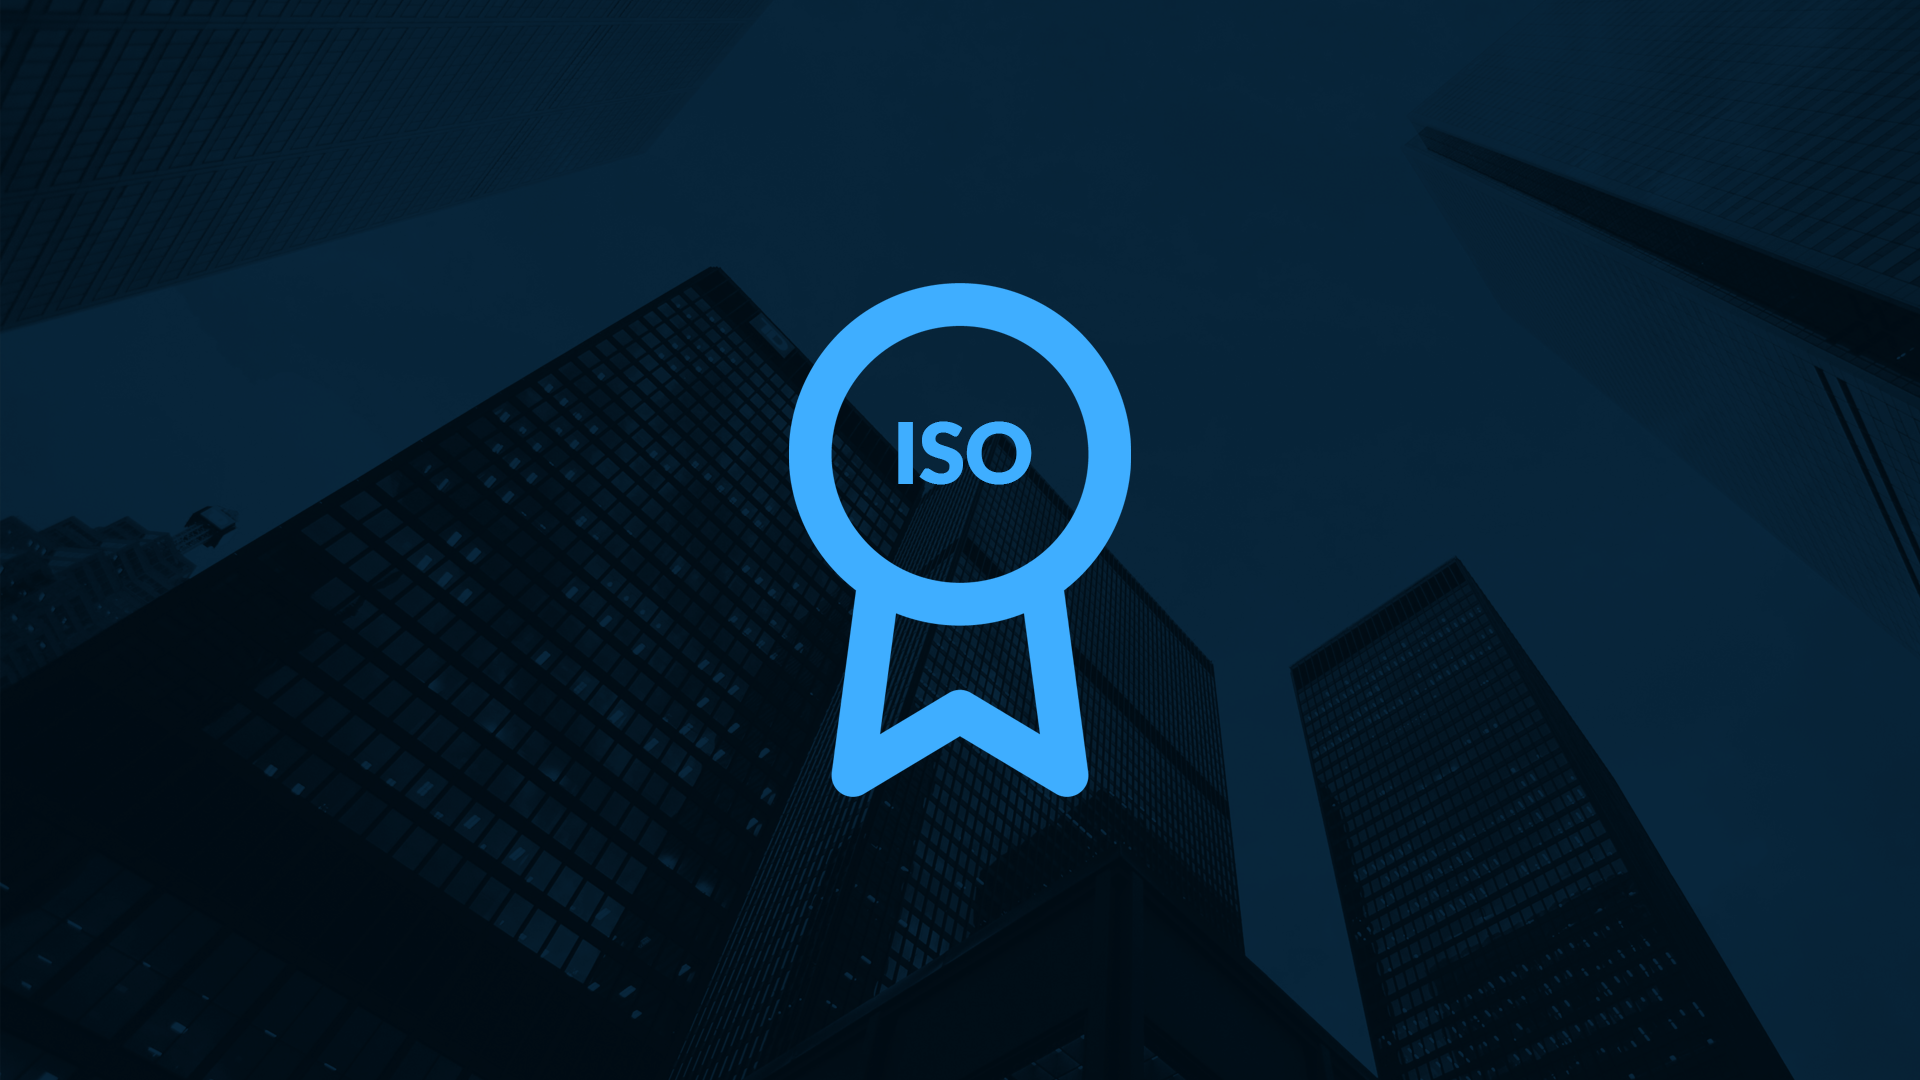 Secure building technology thanks to ISO certificate